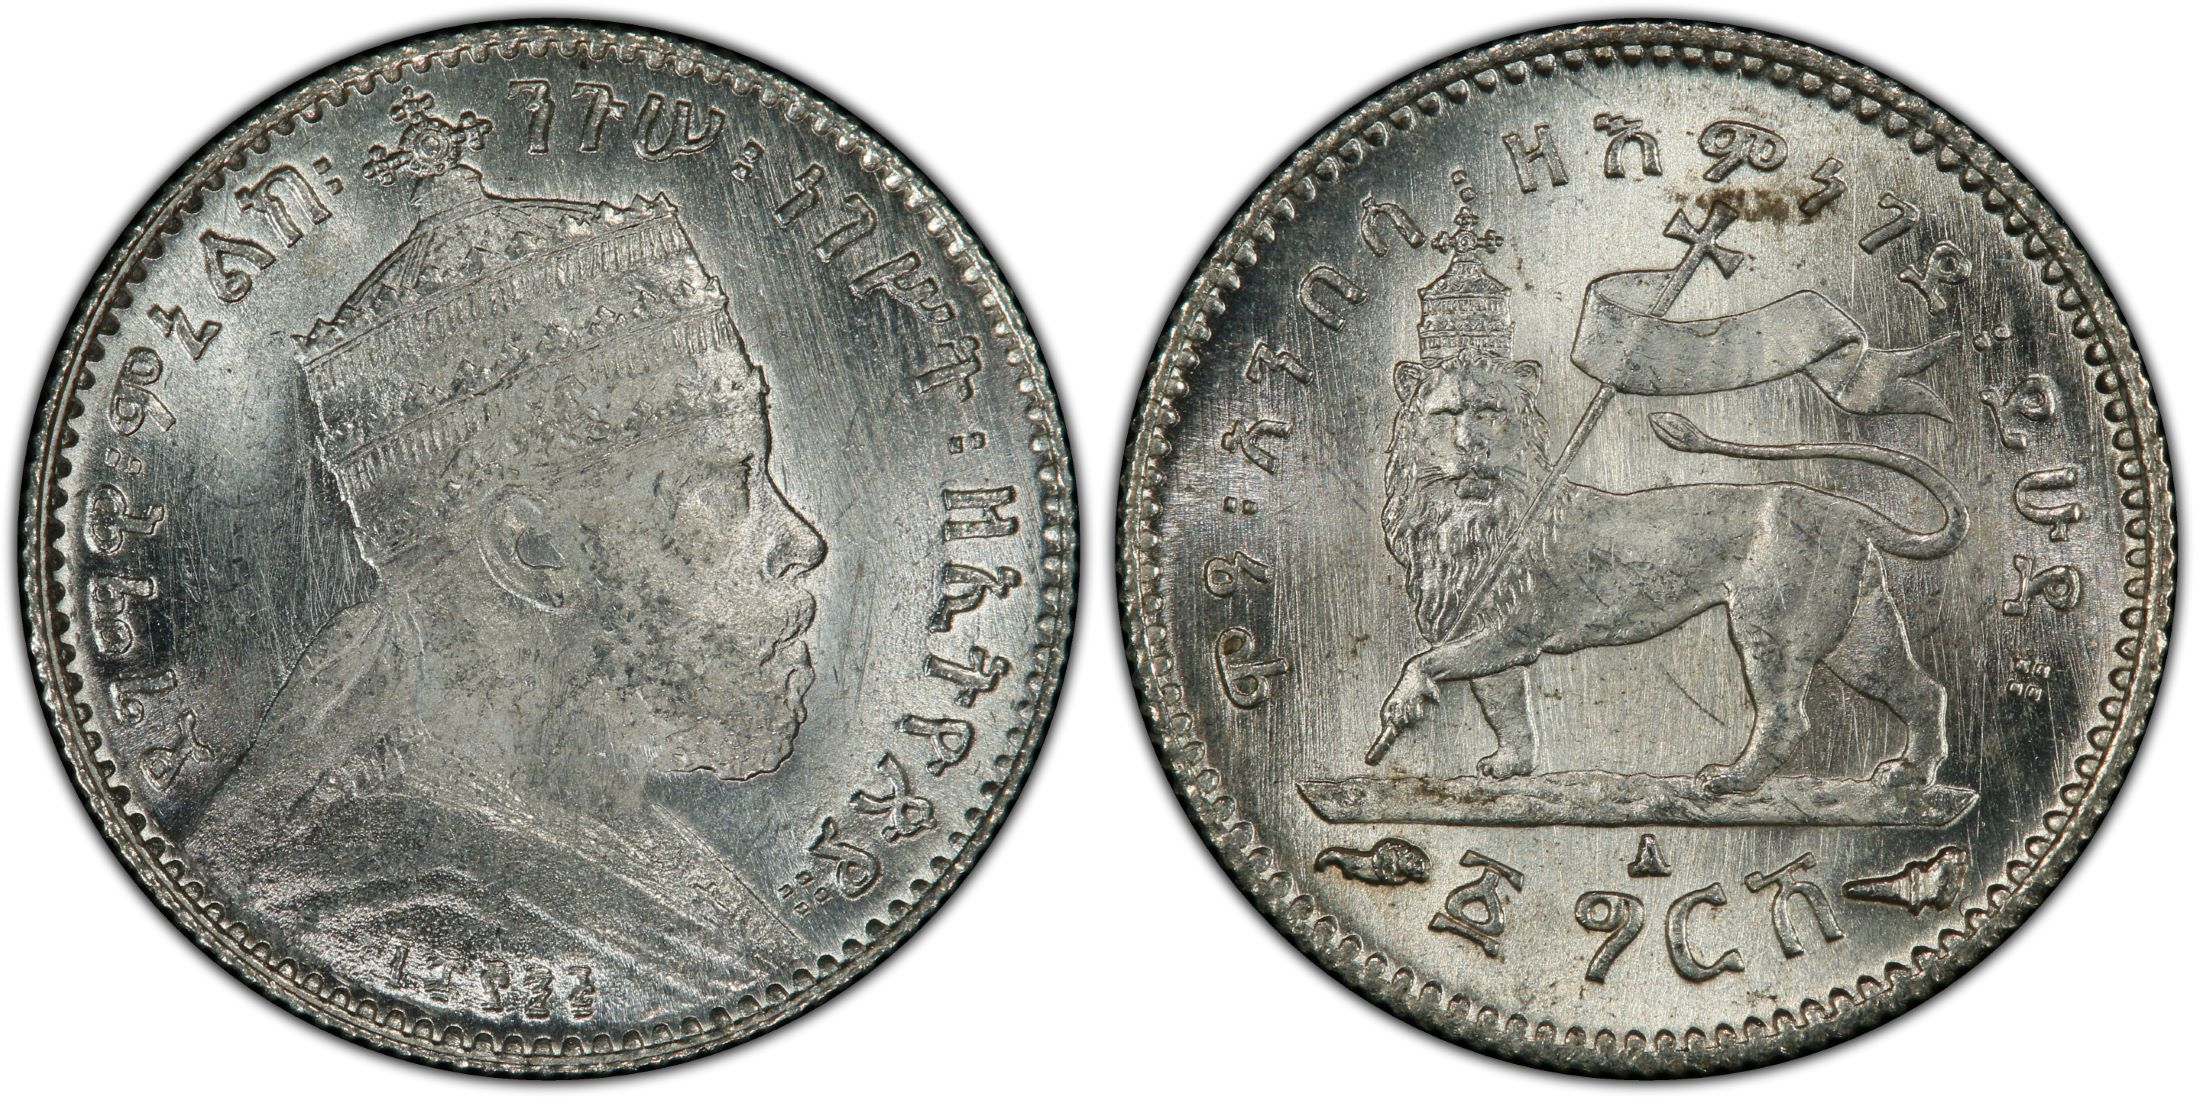 ETHIOPIA Menelik II 1895 (1902-03)-A AR Gersh PCGS MS66. 16.5mm 1.4038gm KM 12